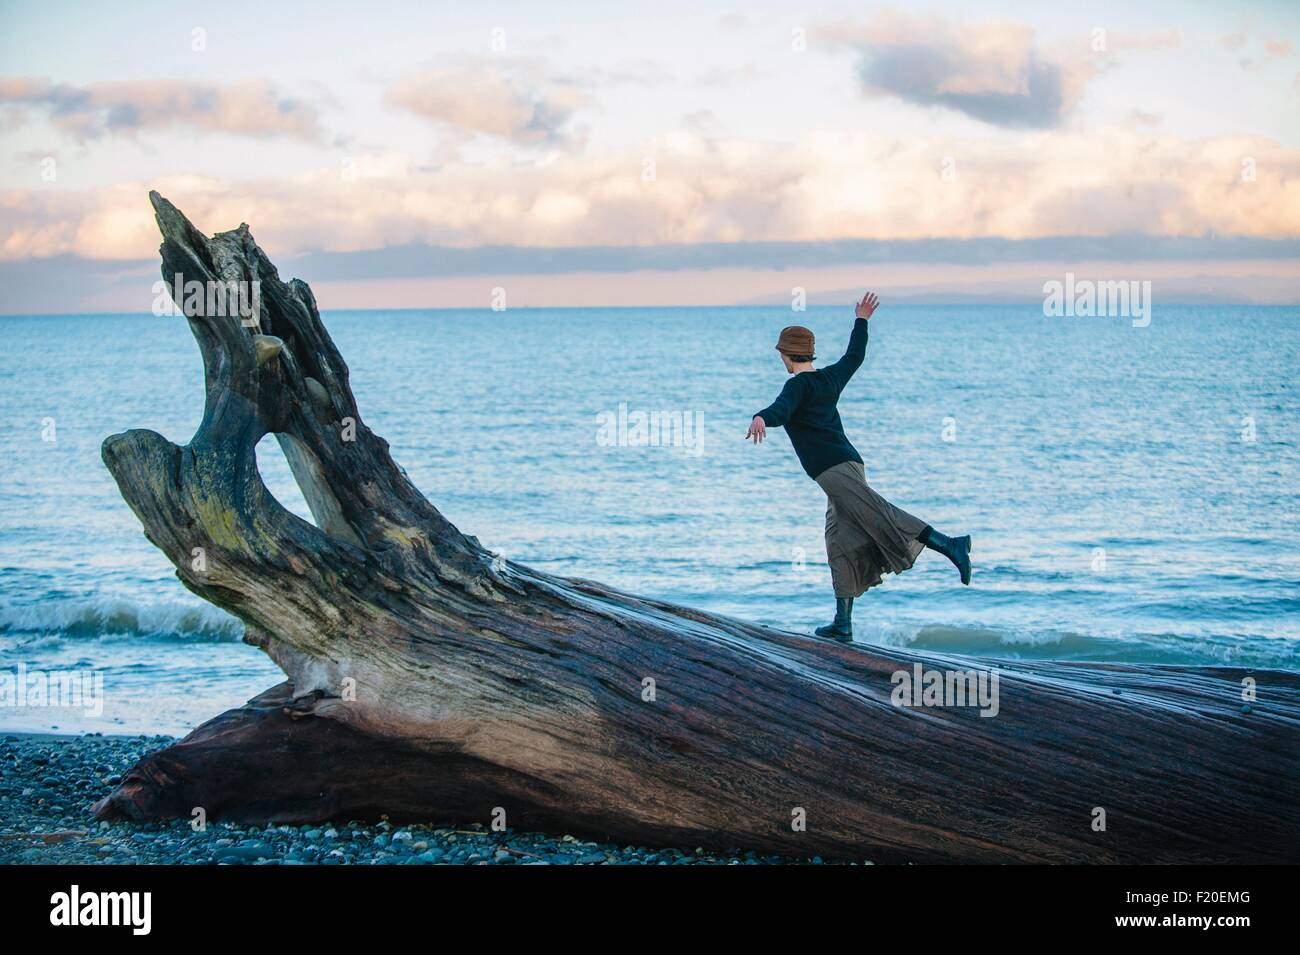 Woman standing on large driftwood tree trunk on beach - Stock Image